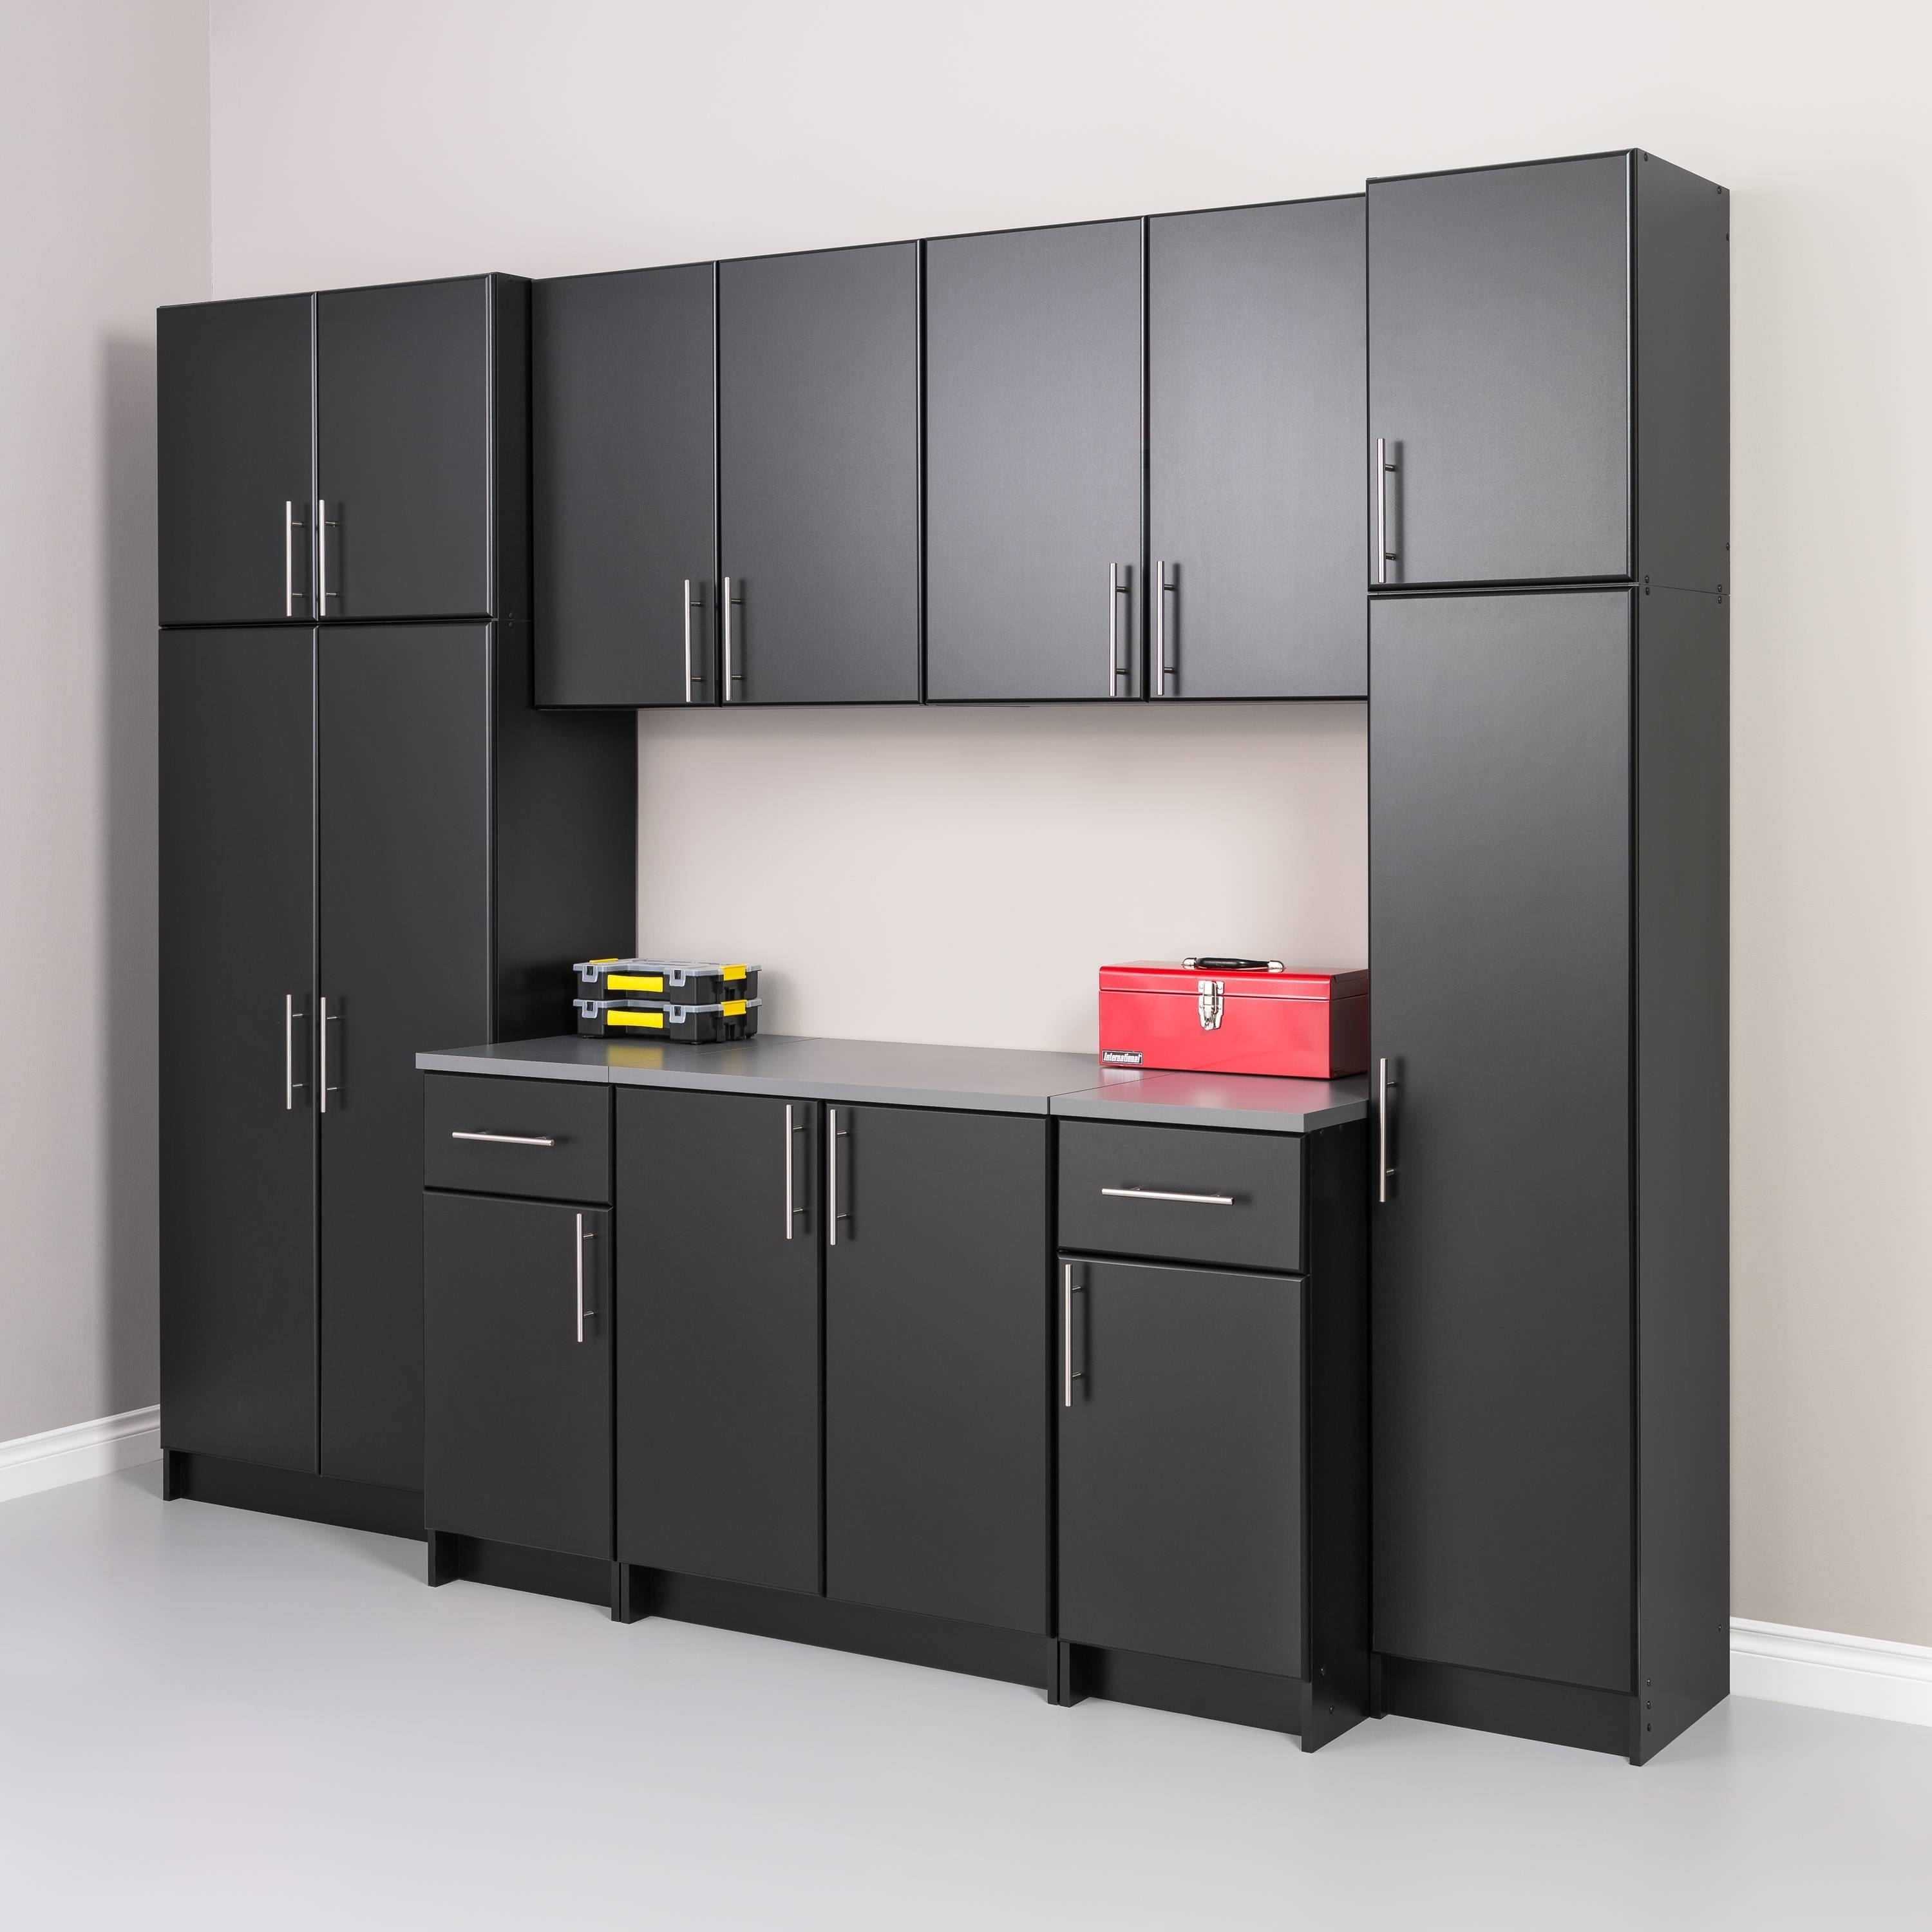 Garage Cabinets By George Prepac Winslow Elite 32 Inch Storage Cabinet Multiple Finishes